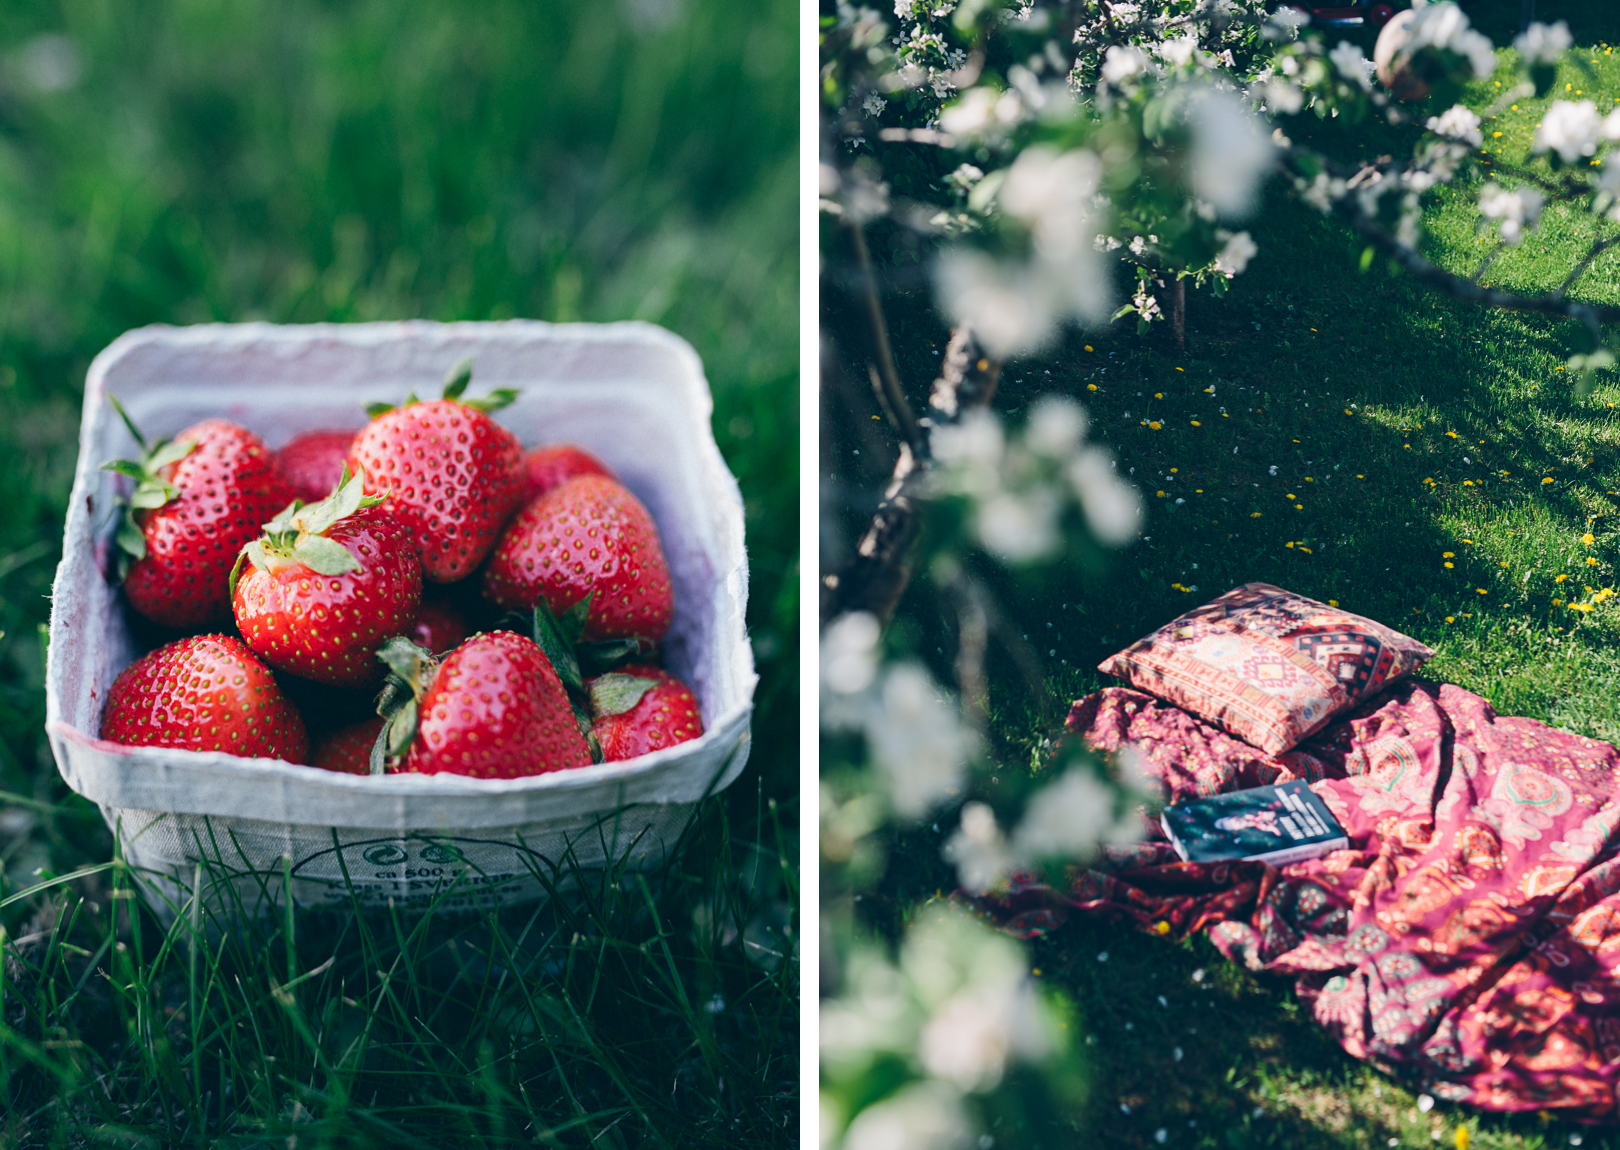 Strawberries & Apple Trees | Cashew Kitchen